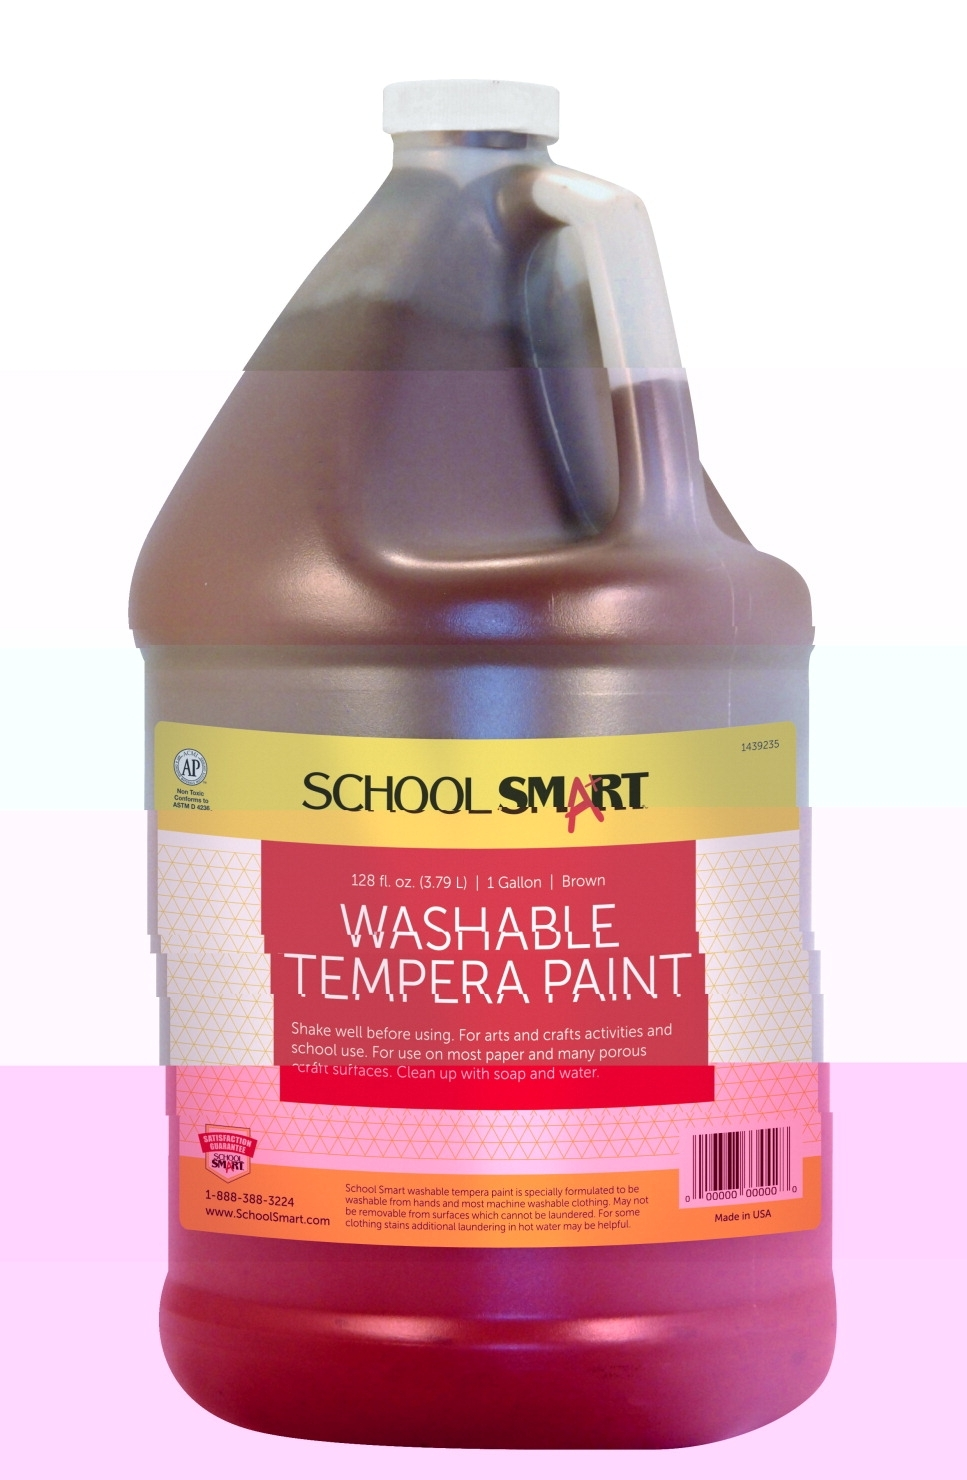 Learning: Classroom Arts & Crafts Paints Tempera Paints - 1439235 - School Smart Non-toxic Washable Tempera Paint; 1 Gal Plastic Bottle; Brown 1439235